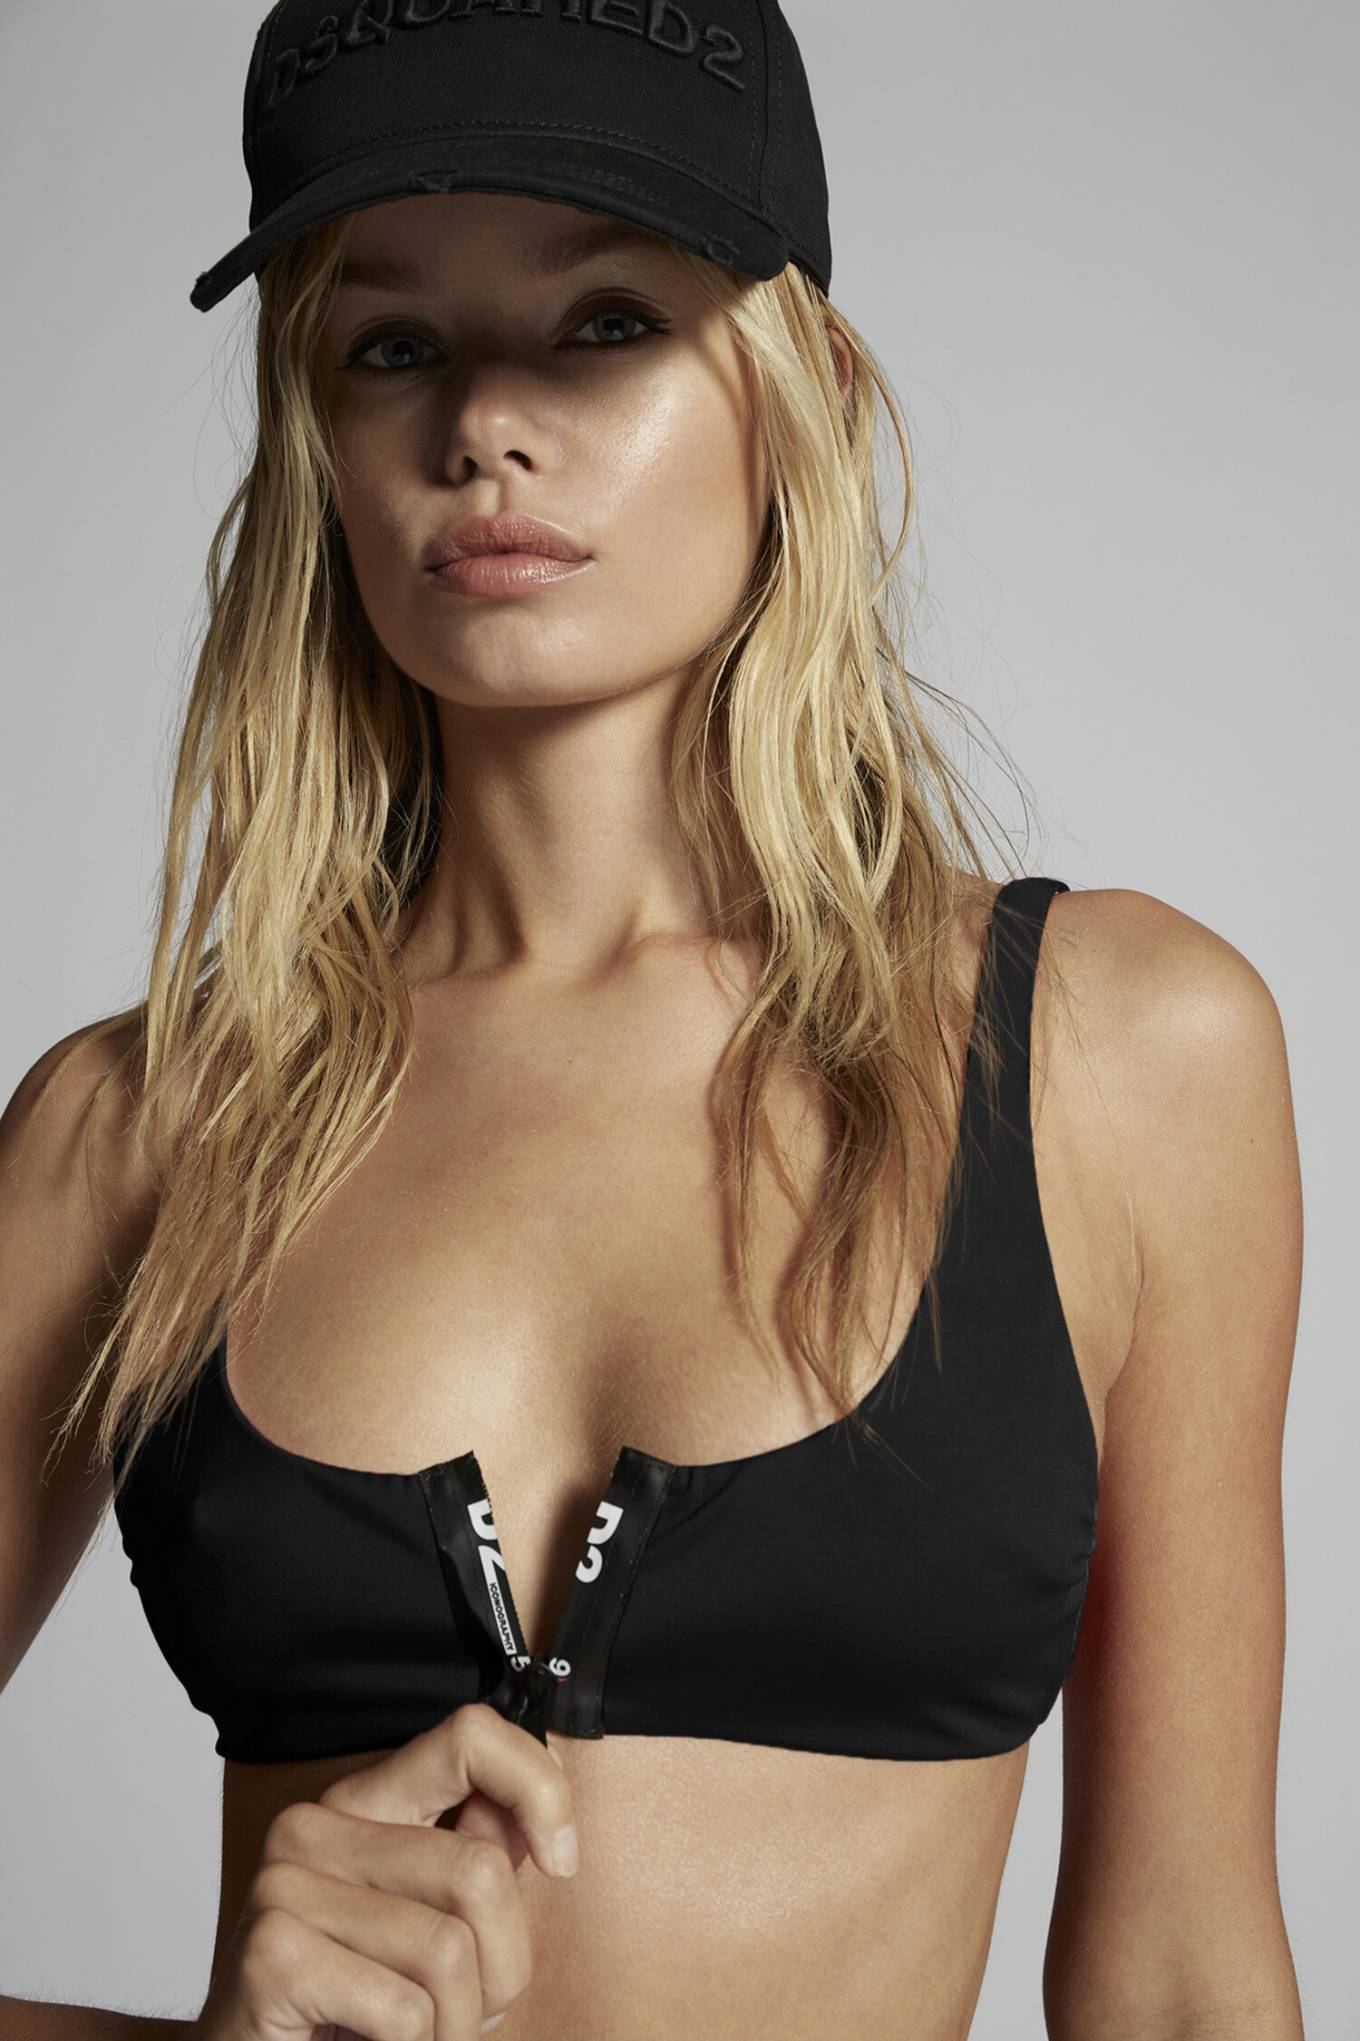 Frida Aasen donning a skimpy black bikini top with brand logo, a scoop neck and straps